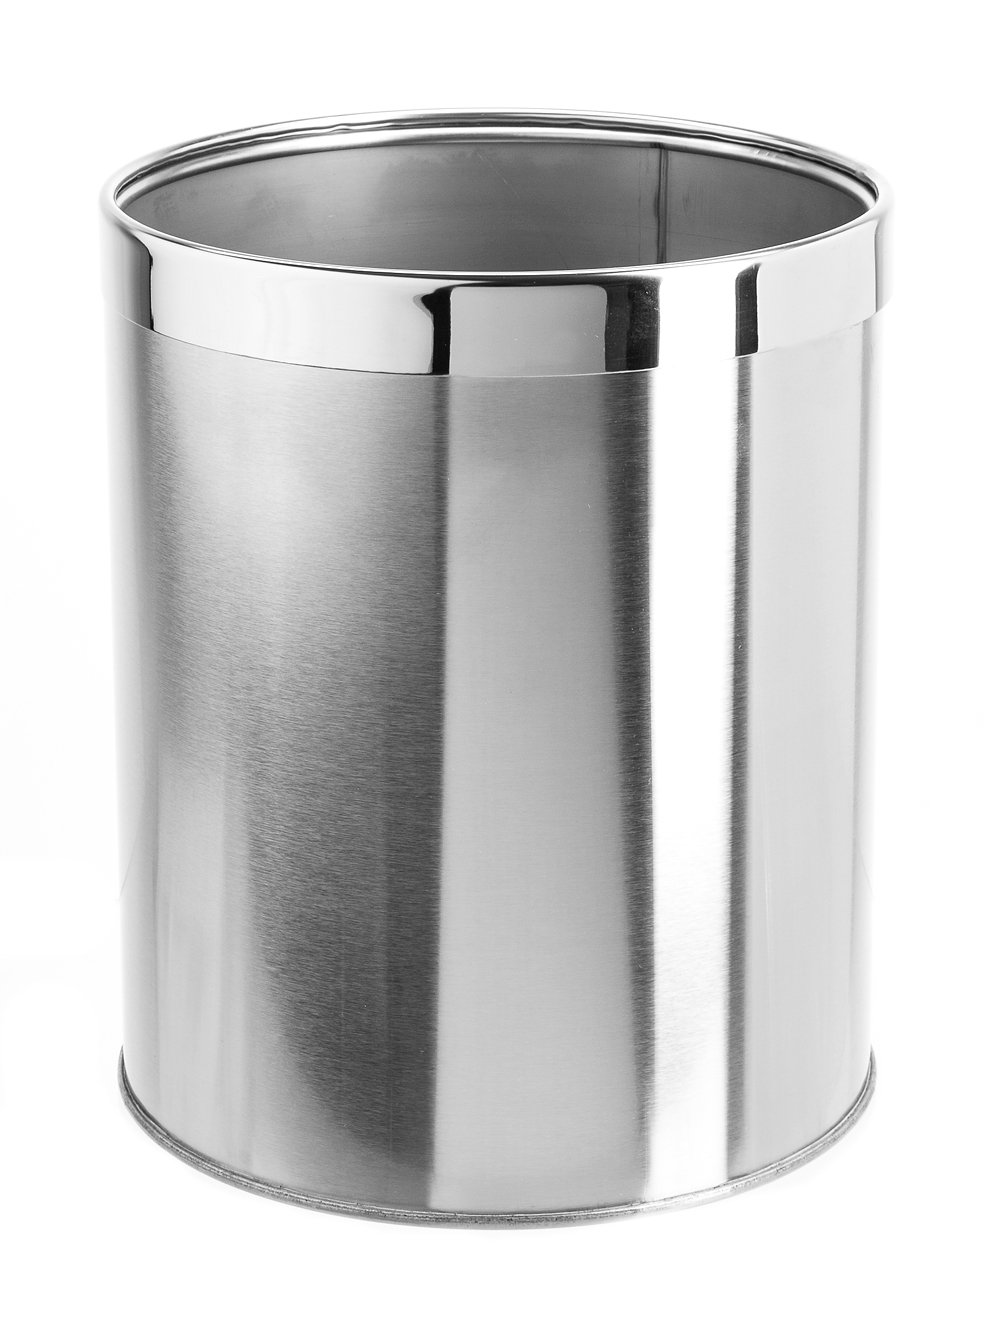 Bennett''Detach-A-Ring'' Trash Can, Small Office Stainless Steel Wastebasket, Modern Home Décor, Round Shape (Dia.8.8 x H10.6)